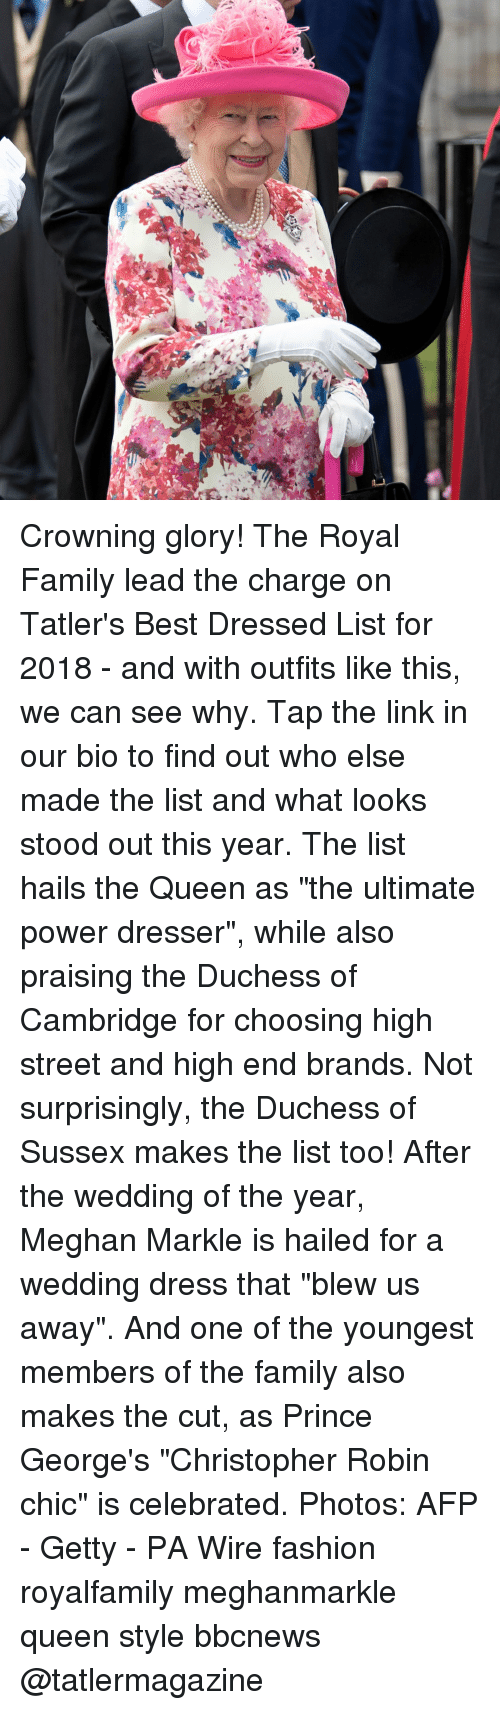 "Family, Fashion, and Memes: Crowning glory! The Royal Family lead the charge on Tatler's Best Dressed List for 2018 - and with outfits like this, we can see why. Tap the link in our bio to find out who else made the list and what looks stood out this year. The list hails the Queen as ""the ultimate power dresser"", while also praising the Duchess of Cambridge for choosing high street and high end brands. Not surprisingly, the Duchess of Sussex makes the list too! After the wedding of the year, Meghan Markle is hailed for a wedding dress that ""blew us away"". And one of the youngest members of the family also makes the cut, as Prince George's ""Christopher Robin chic"" is celebrated. Photos: AFP - Getty - PA Wire fashion royalfamily meghanmarkle queen style bbcnews @tatlermagazine"